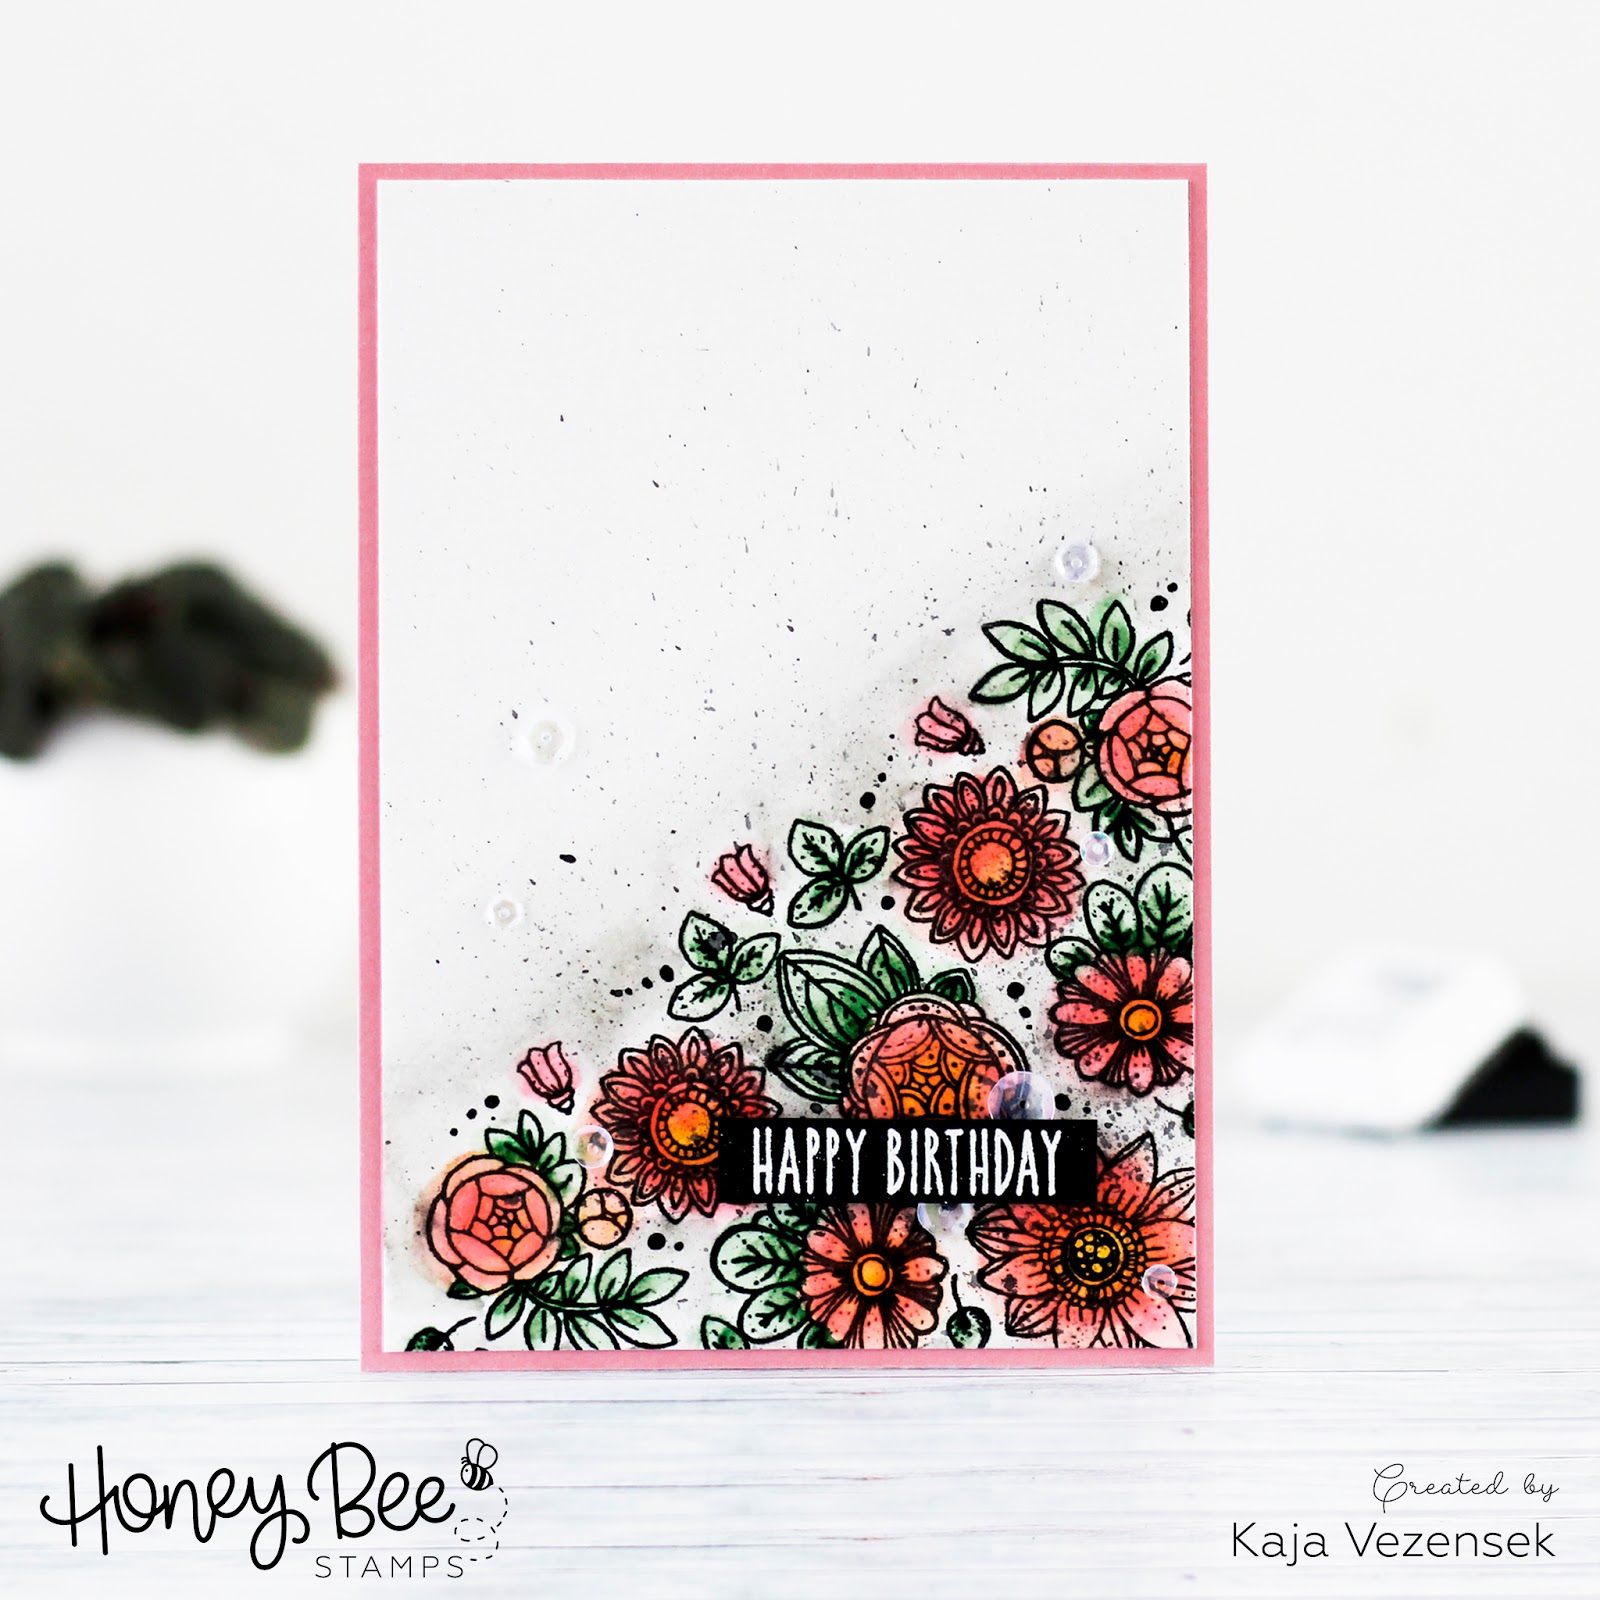 Super quick watercoloring | HONEY BEE